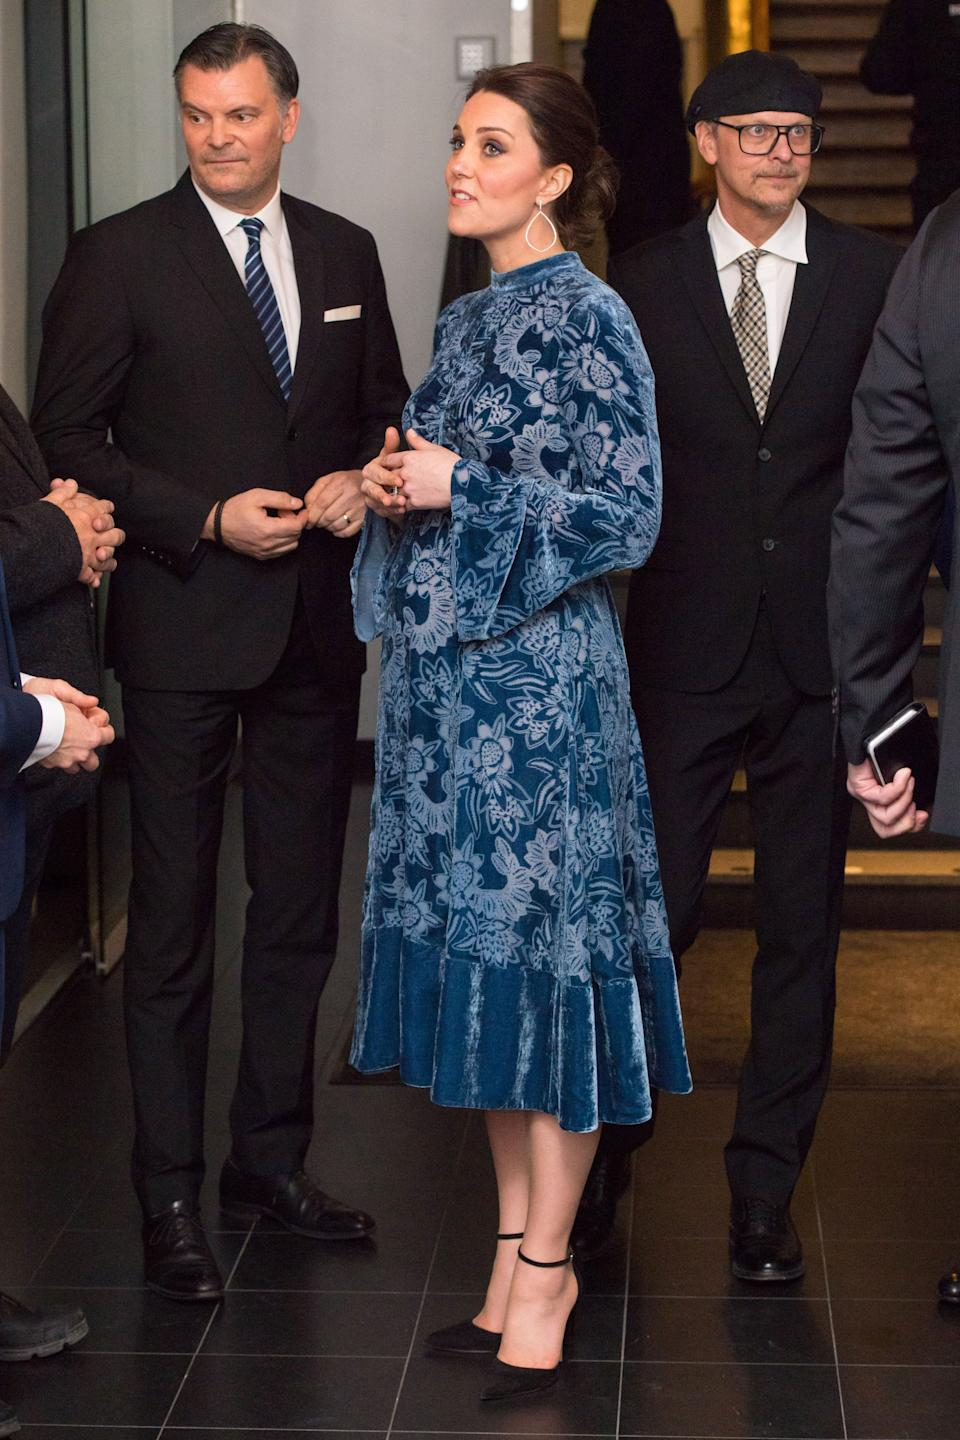 The royals attend a reception to celebrate Swedish culture at the Fotografiska Gallery on Jan. 31.